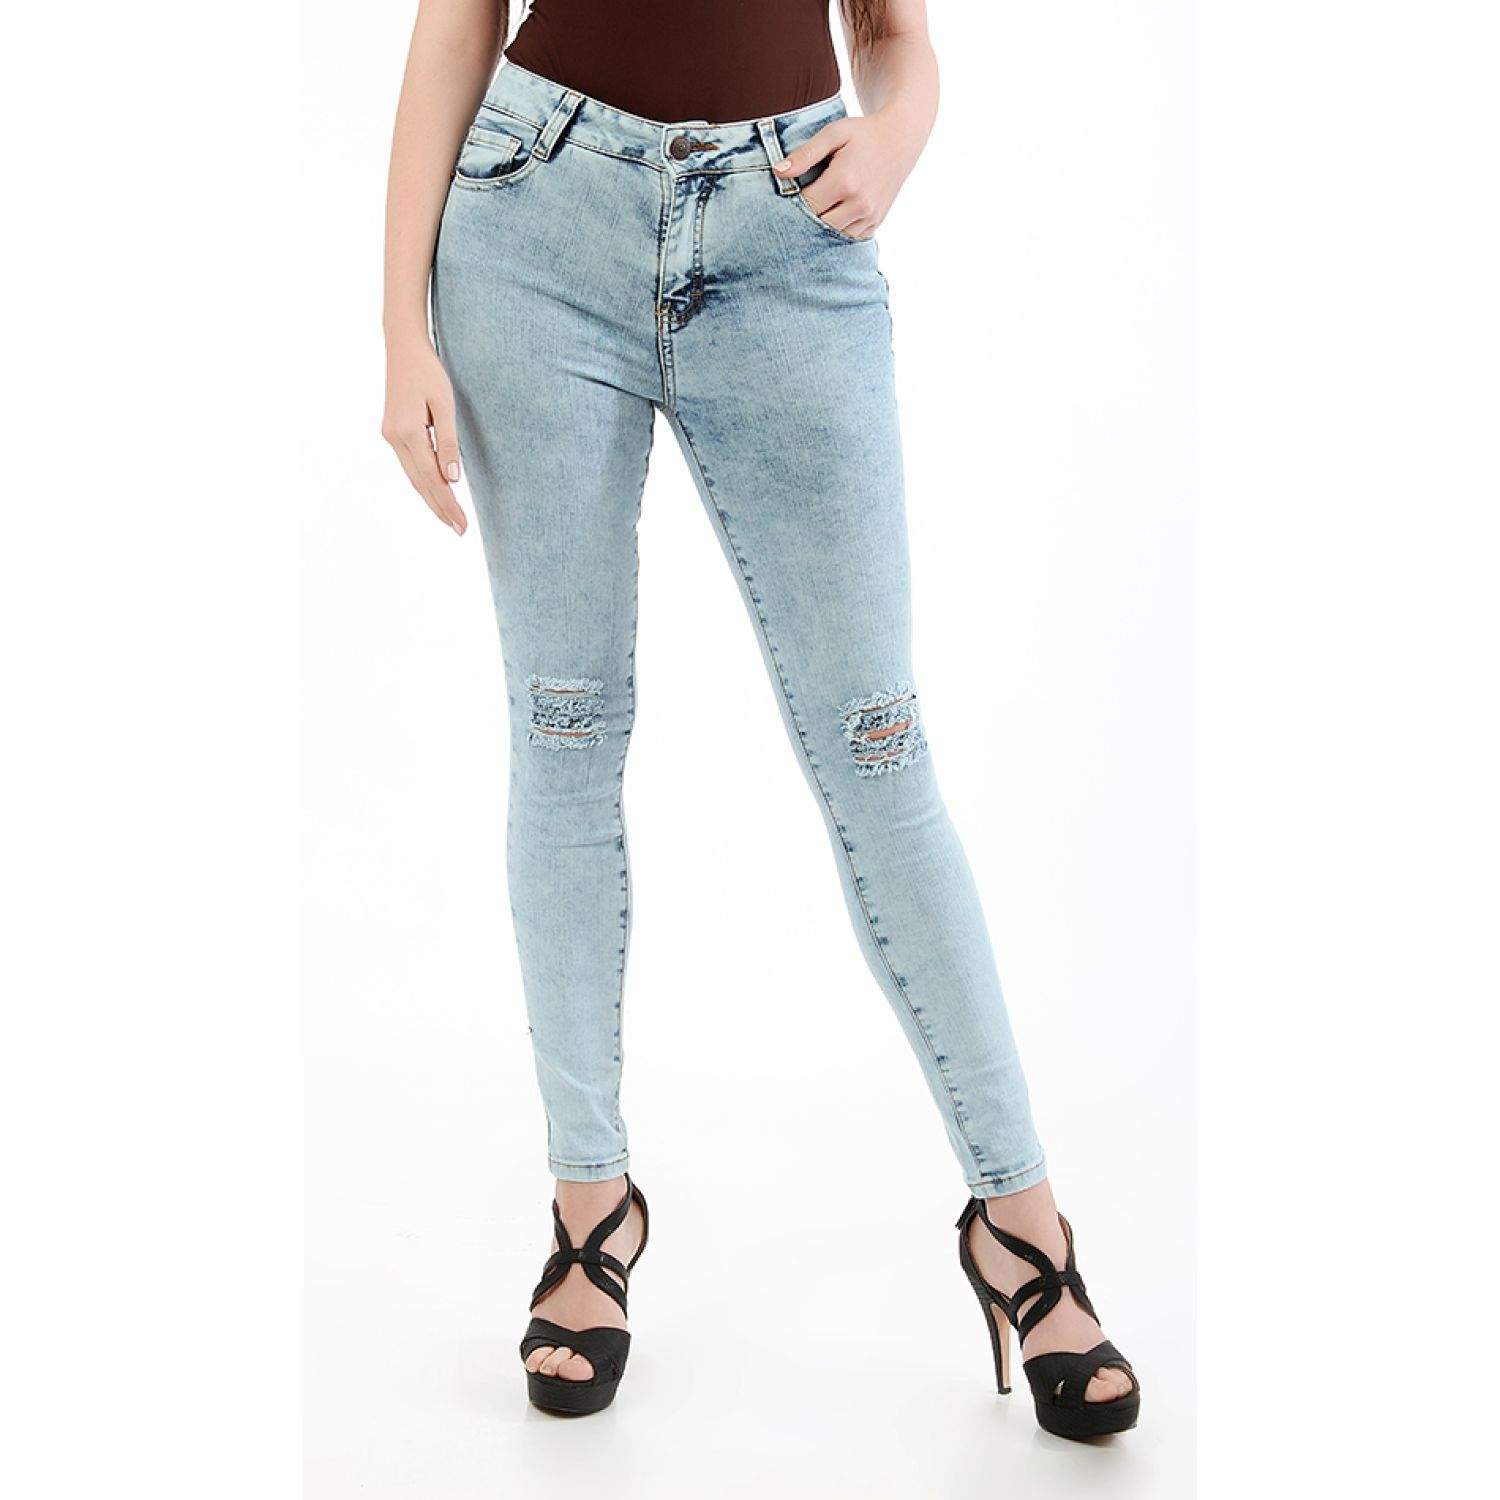 CUSTER Knee W Celeste Casual